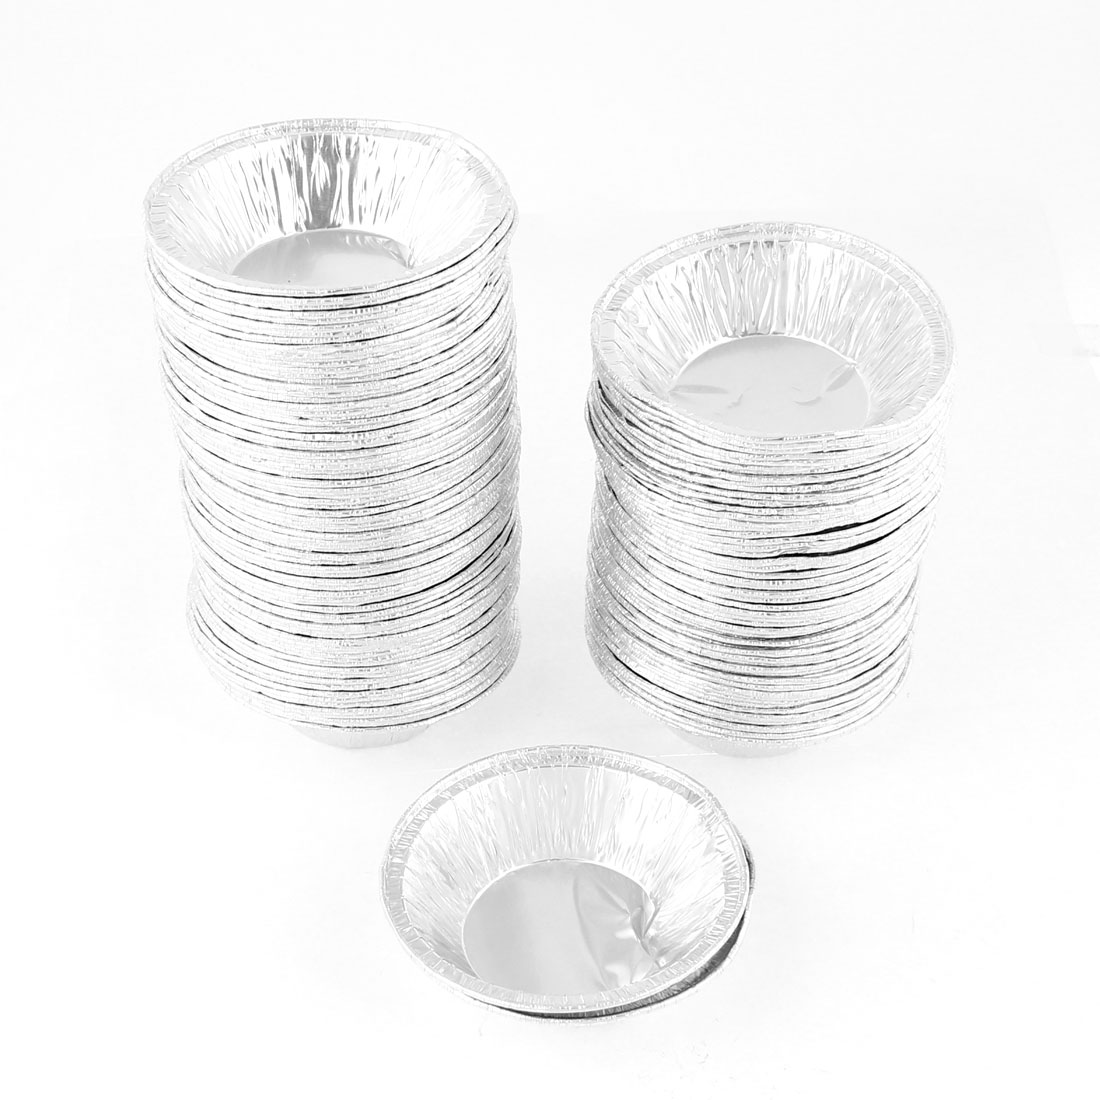 240 Pcs Circular Egg Tart Tins Cake Cups for Kitchen Baking